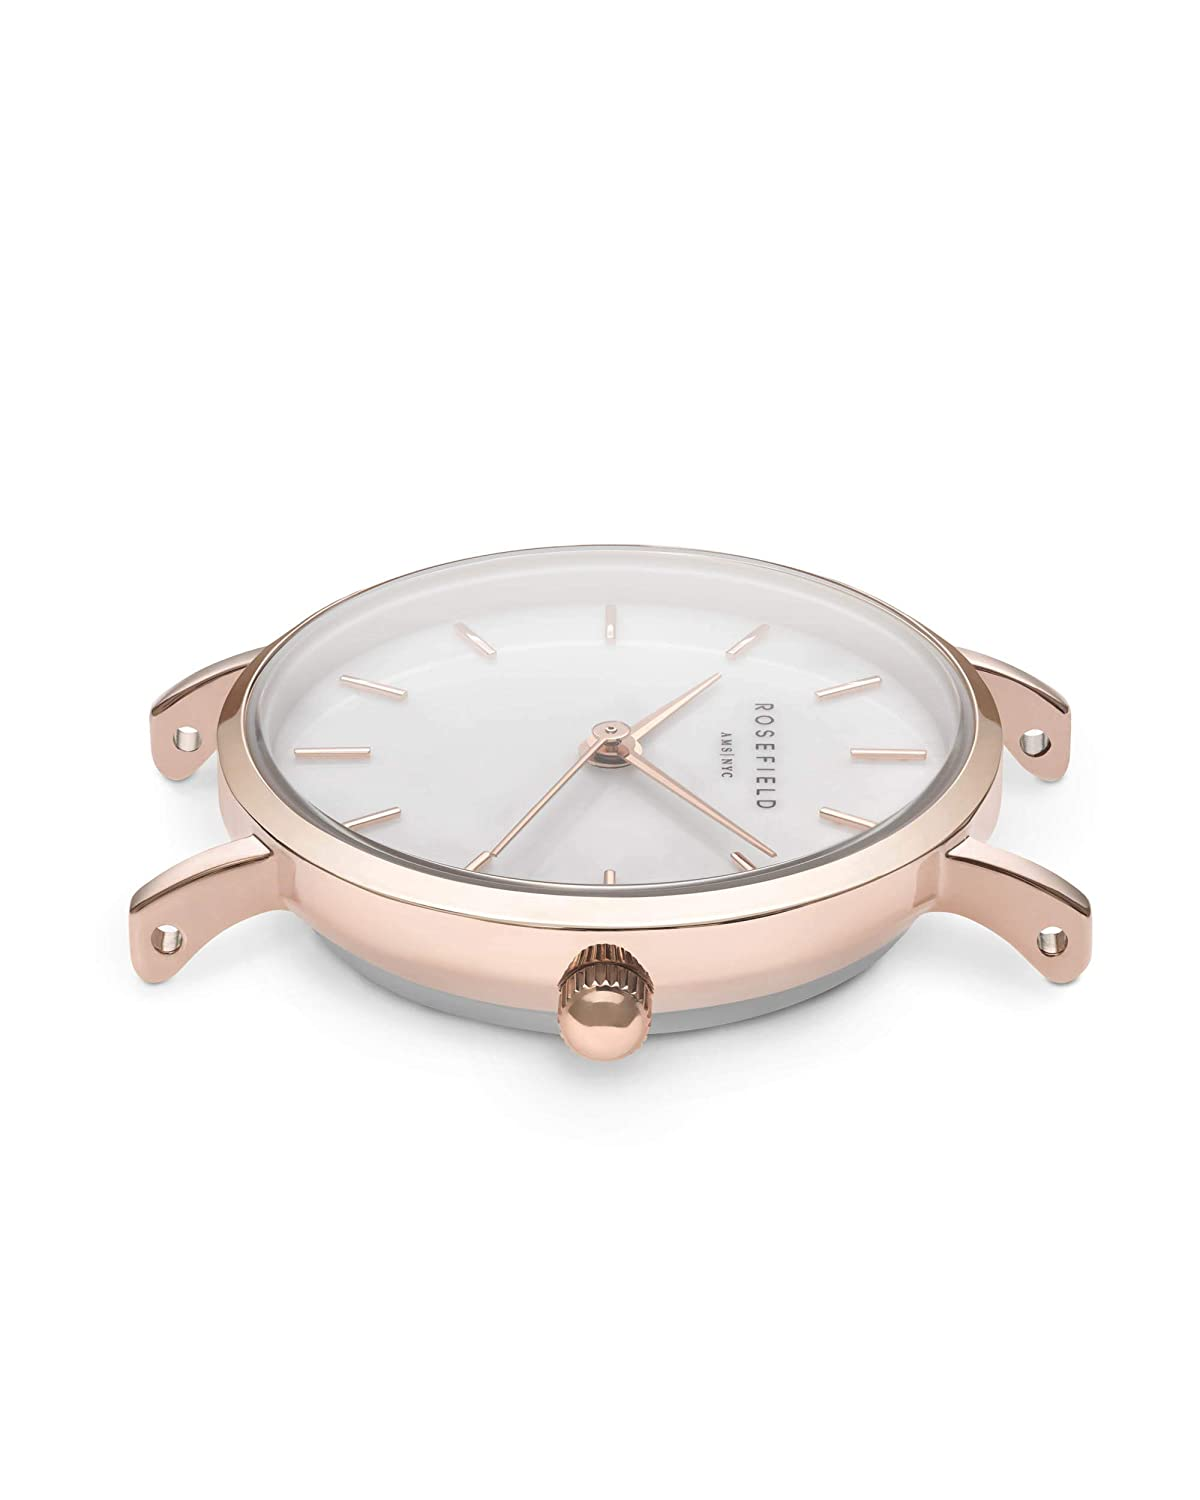 Reloj ROSEFIELD The Small Edit Soft Pink/Rosegold 26WPR-263: Amazon.es: Relojes